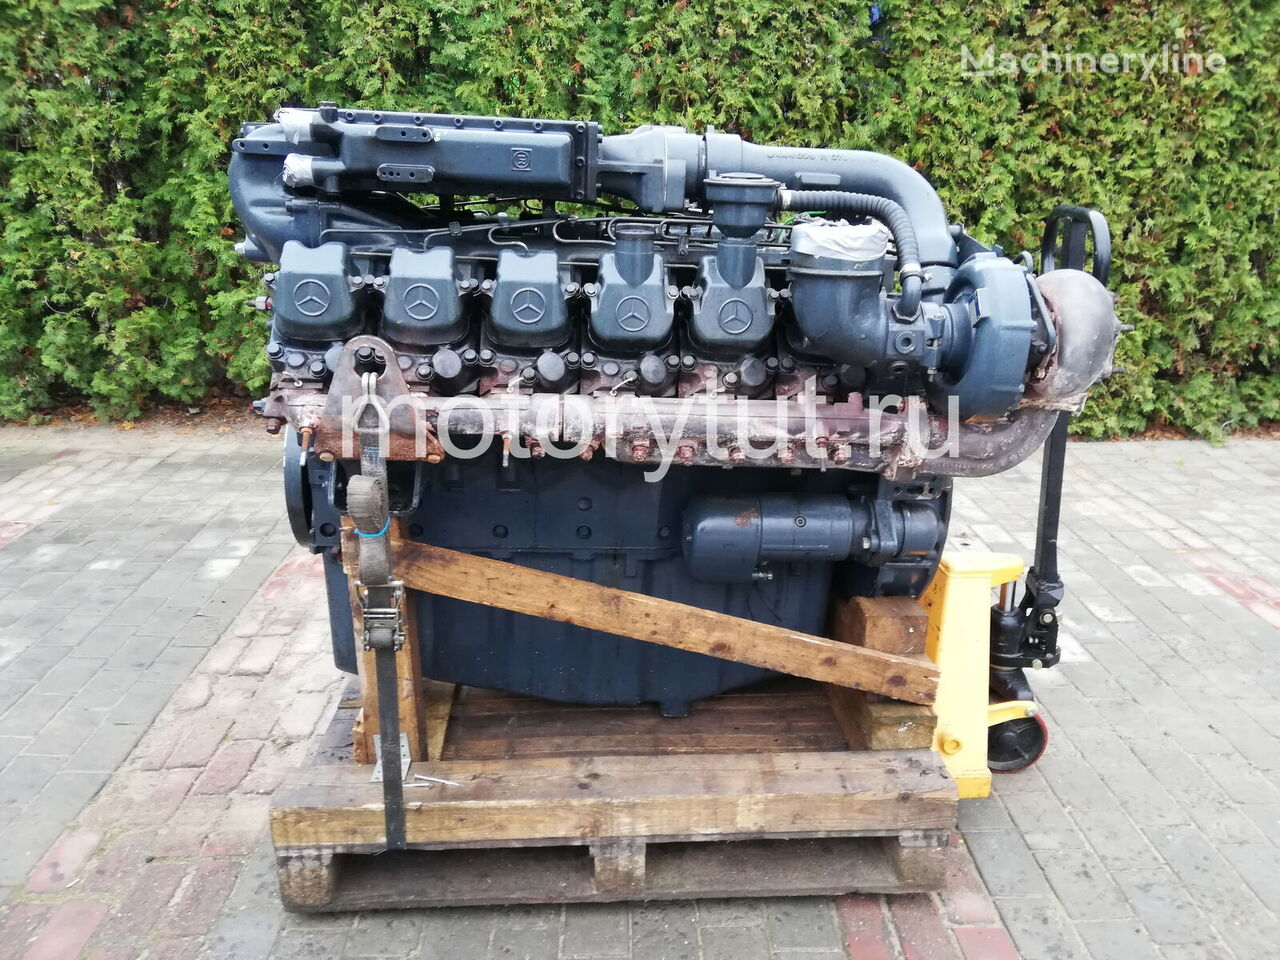 MERCEDES-BENZ OM 444 LA (444.901) engine for WIRTGEN W2100 DCR asphalt milling machine